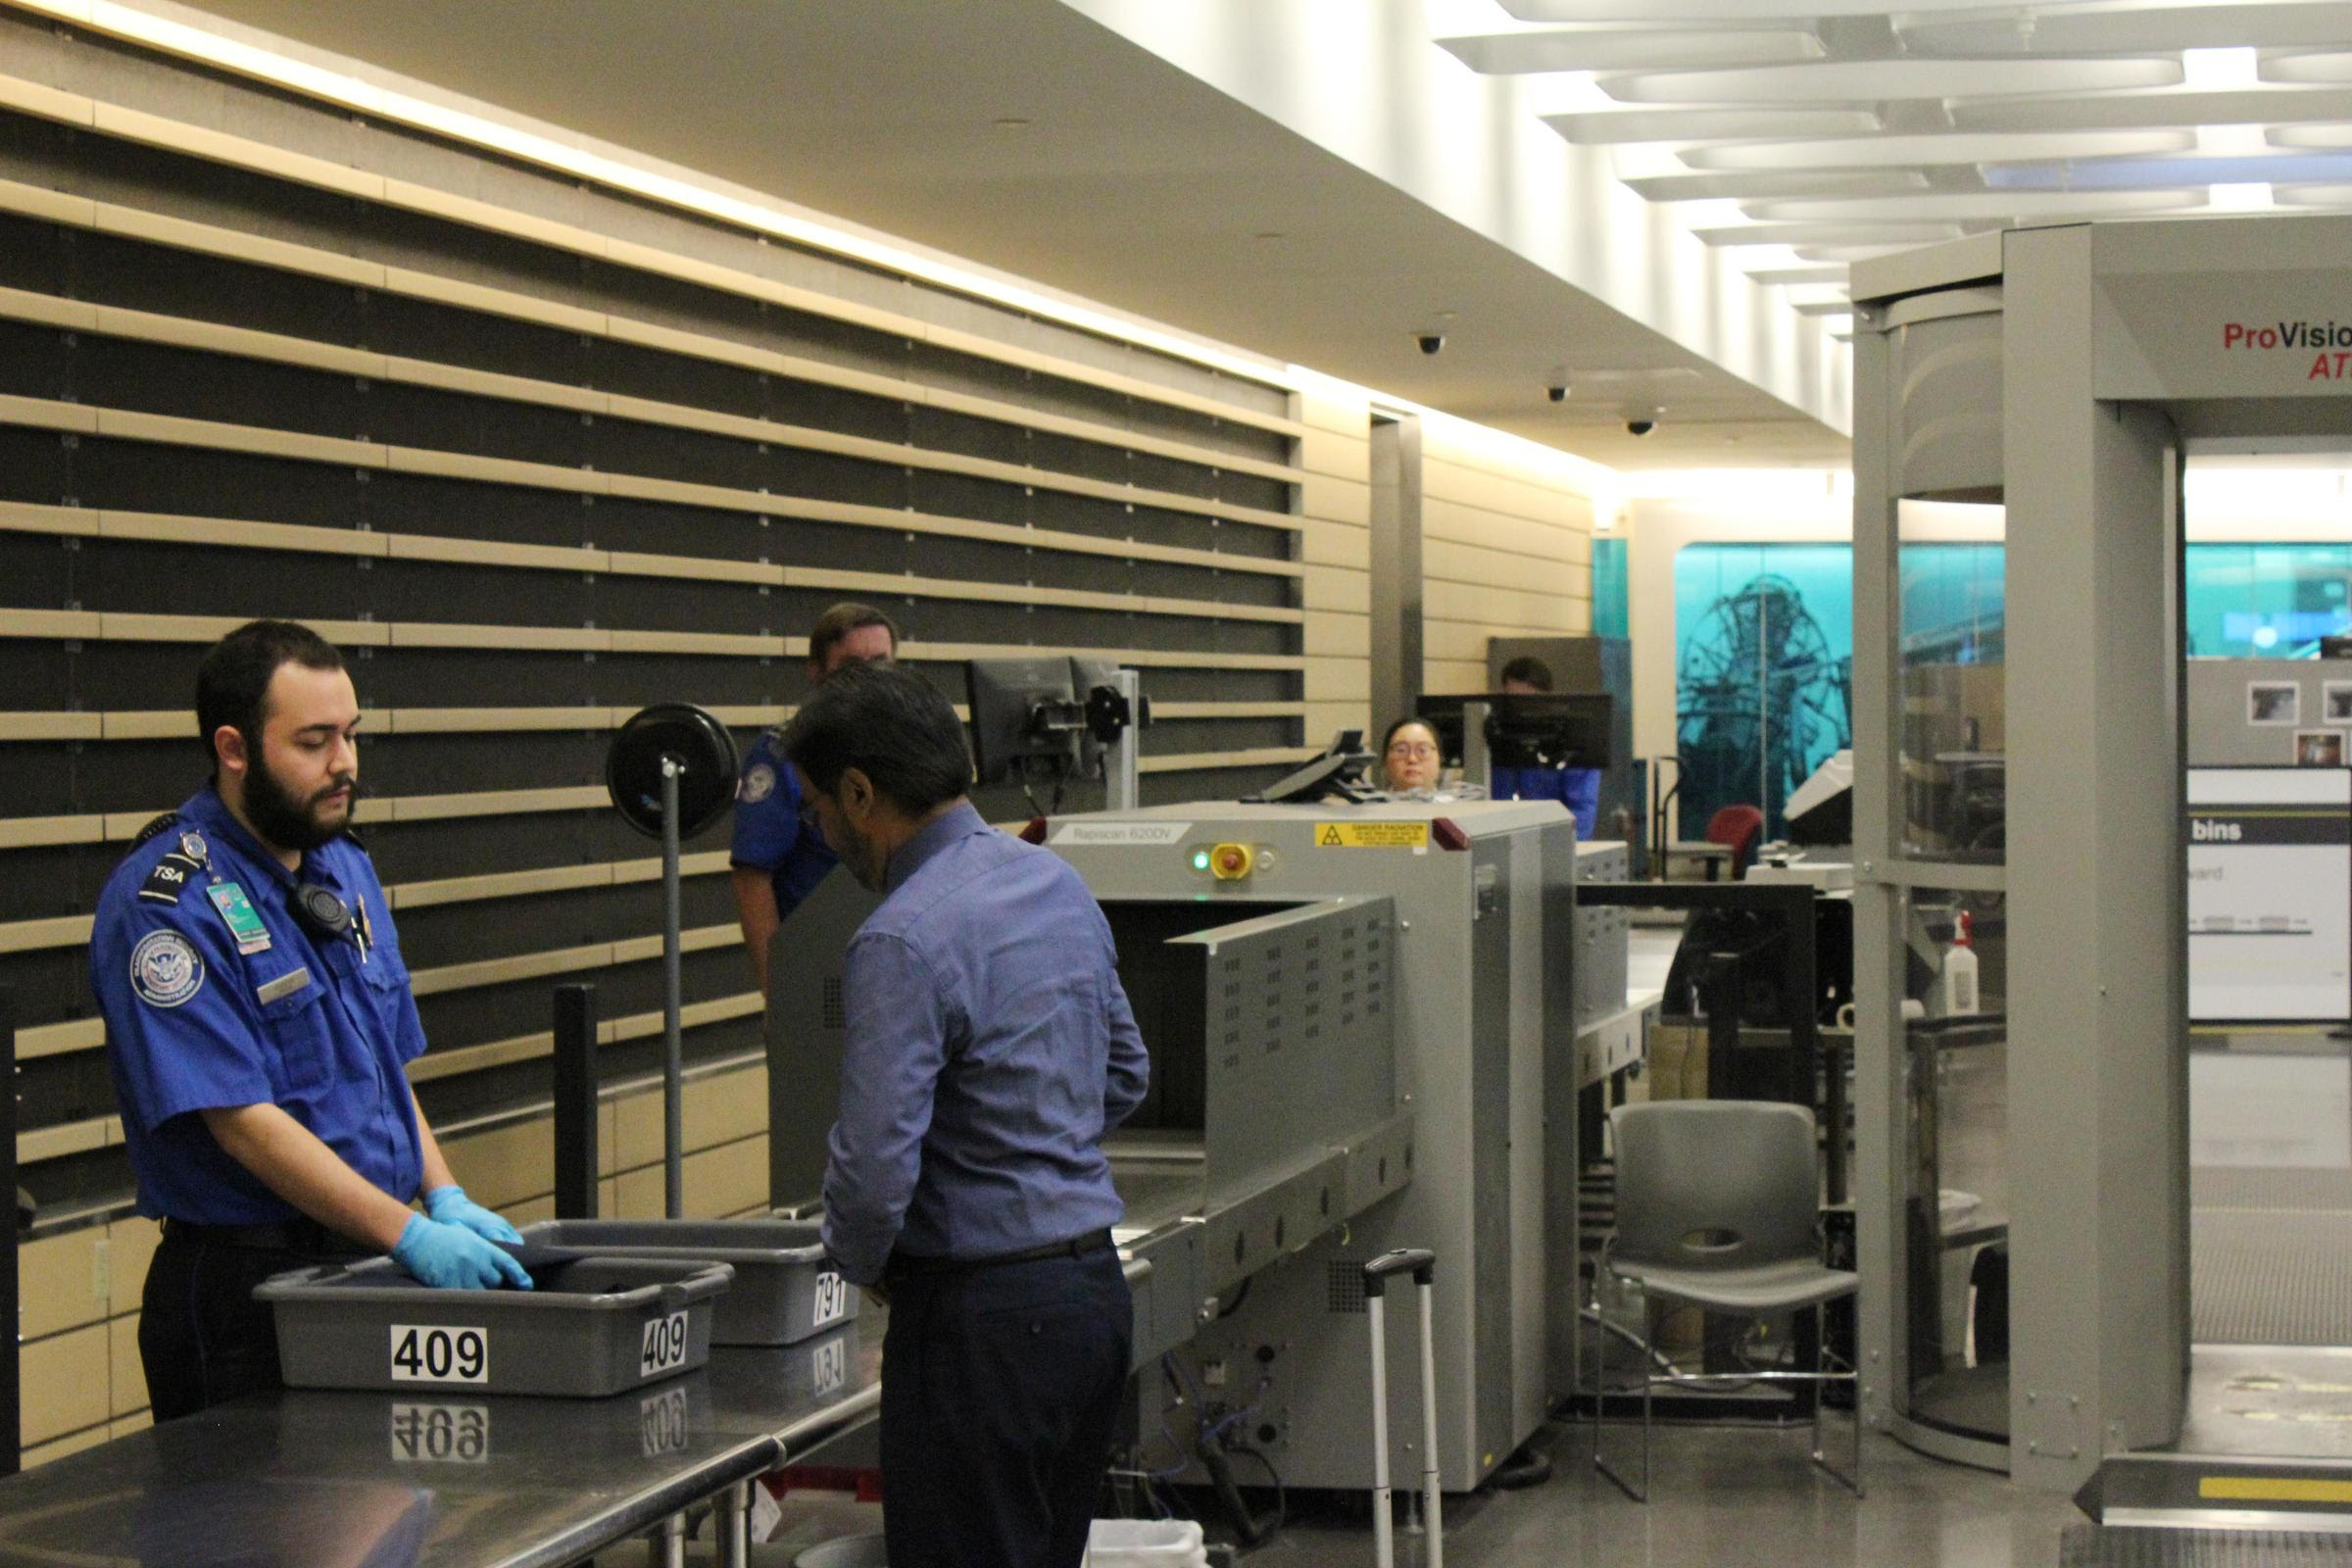 Tsa Rolls Out New Security Procedure At Wichitas Eisenhower Airport